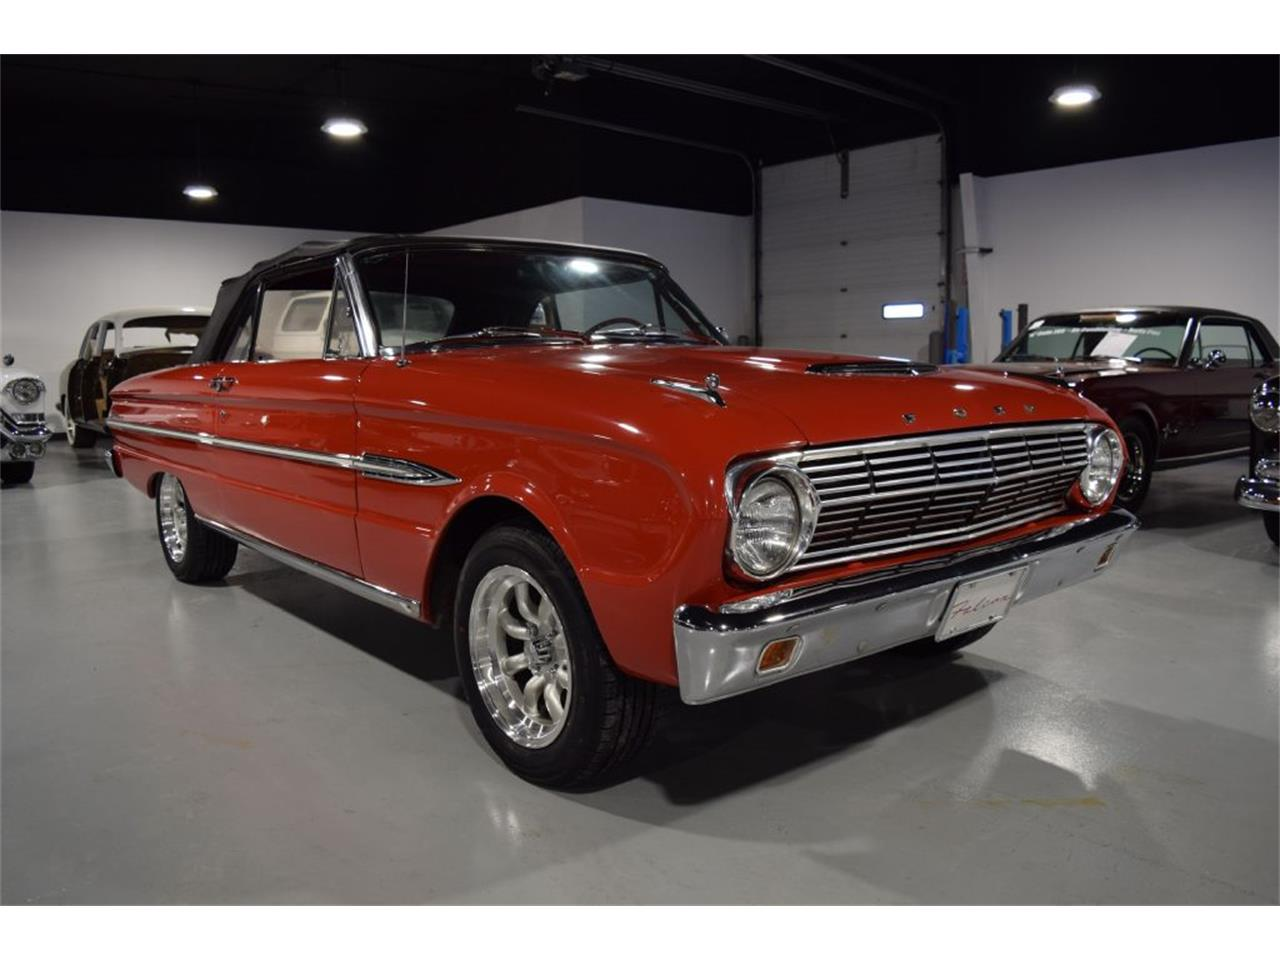 1963 Ford Falcon Futura for sale in Sioux City, IA – photo 25